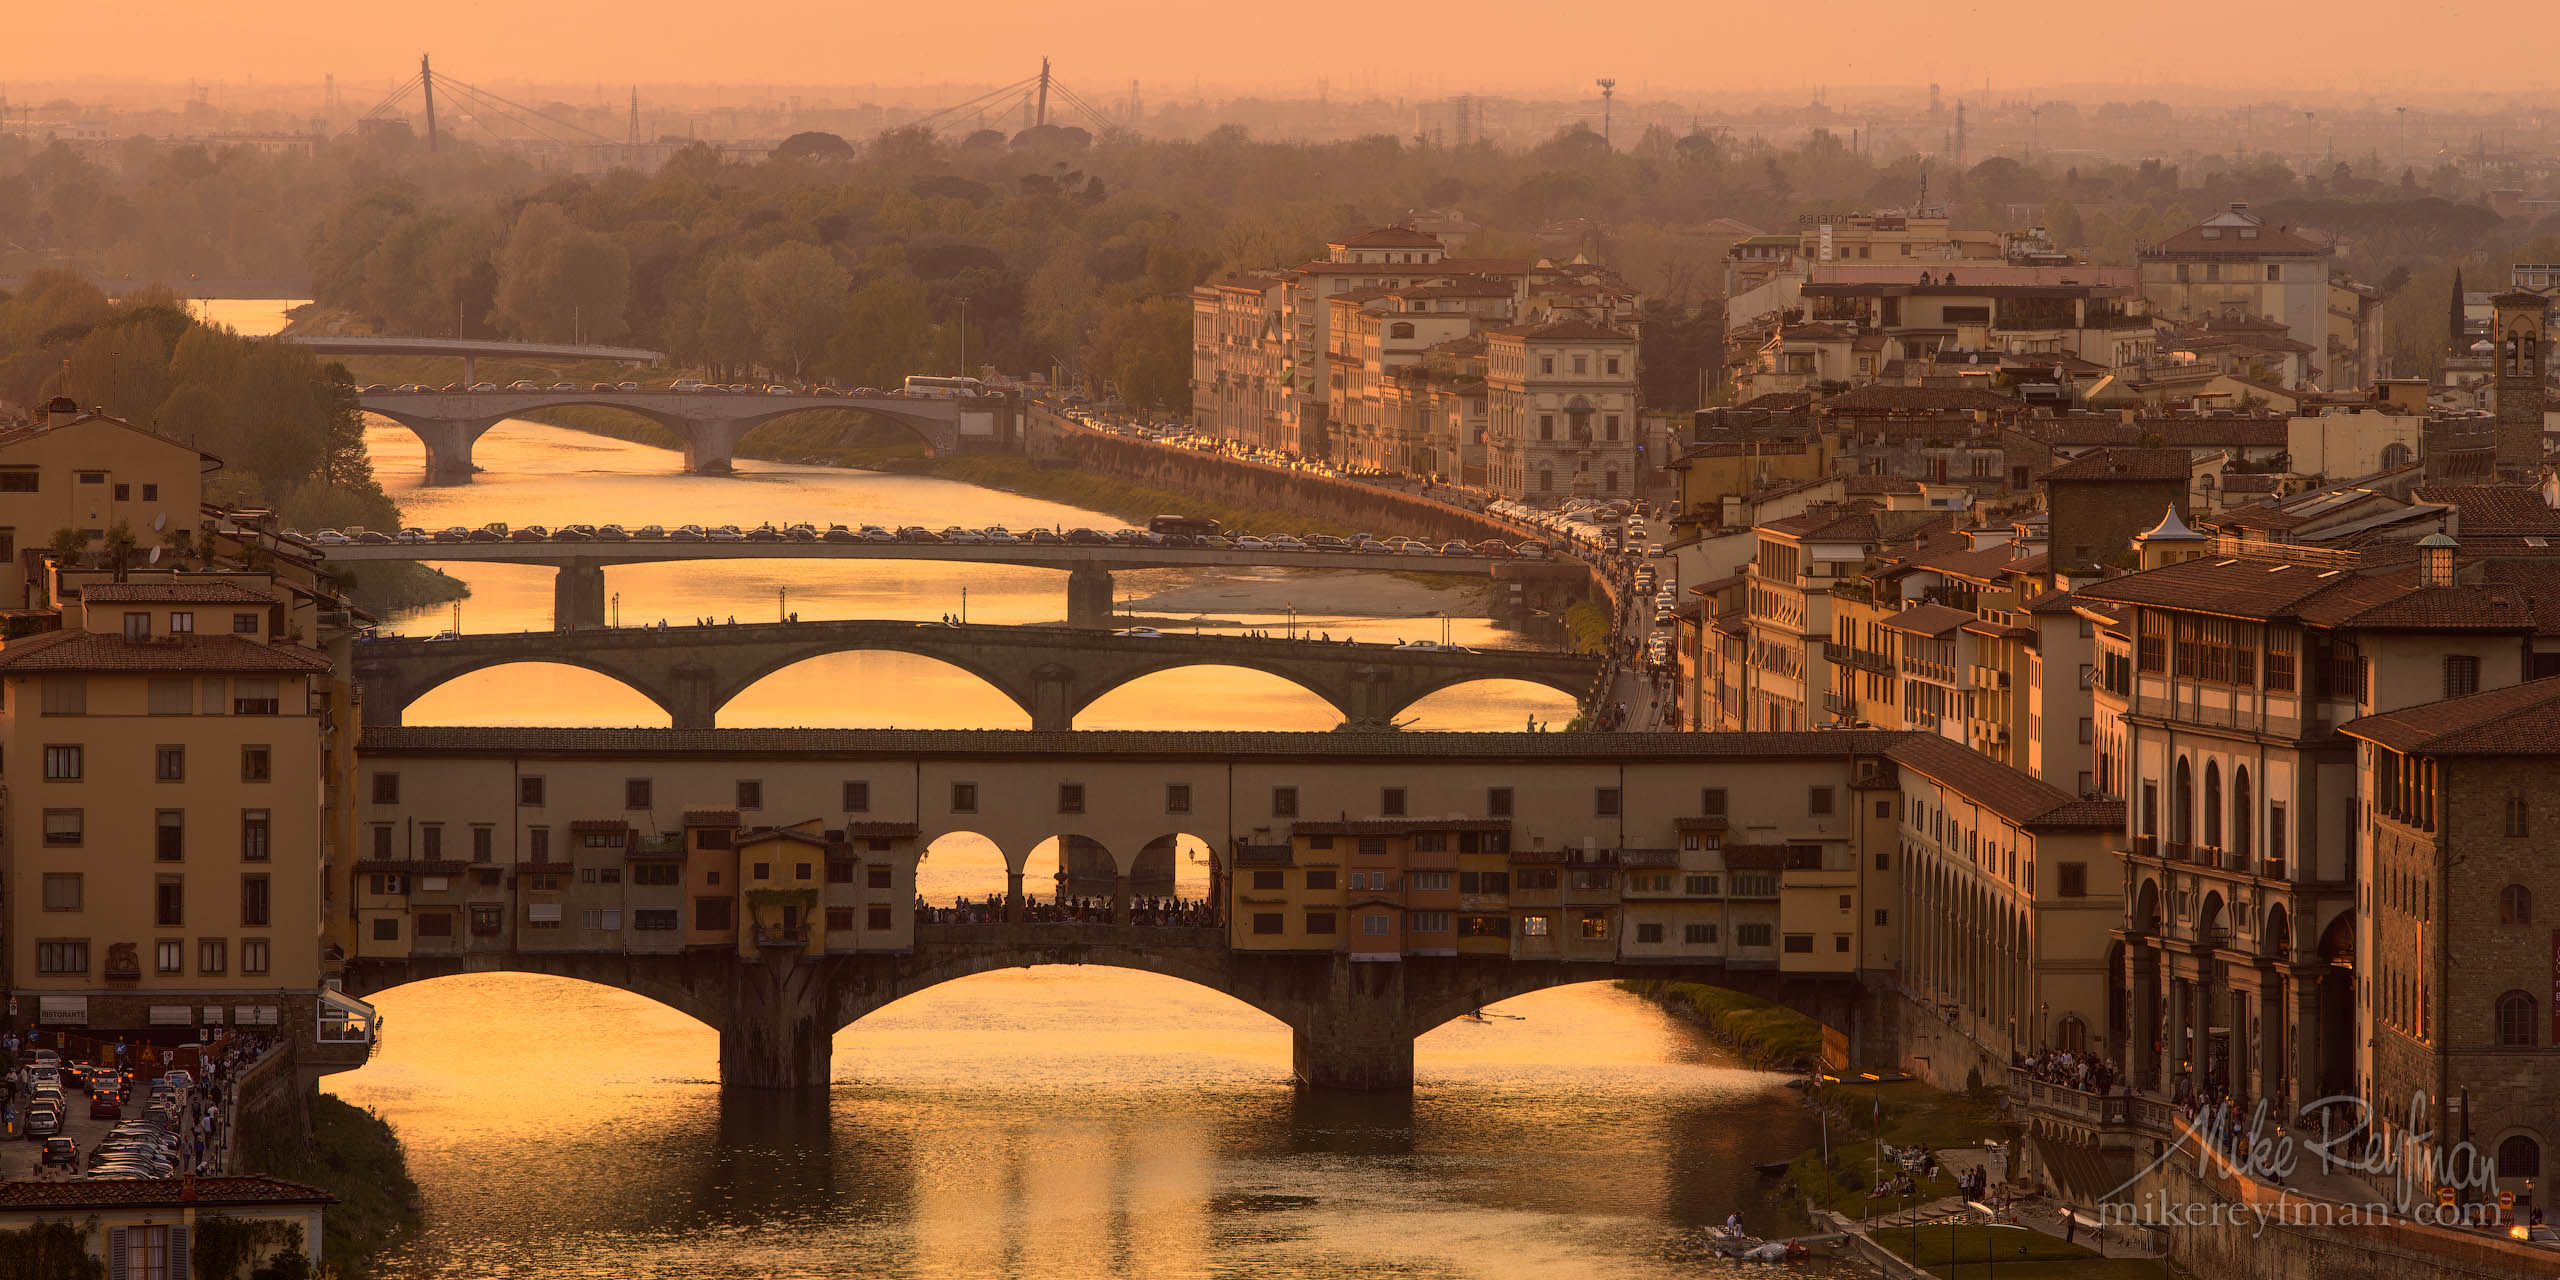 Ponte Vecchio bridge and Arno river in the evening. Florence, Italy. P12-MRD8A7499 - Selected panoramic images with 2:1 aspect ratio - Mike Reyfman Photography